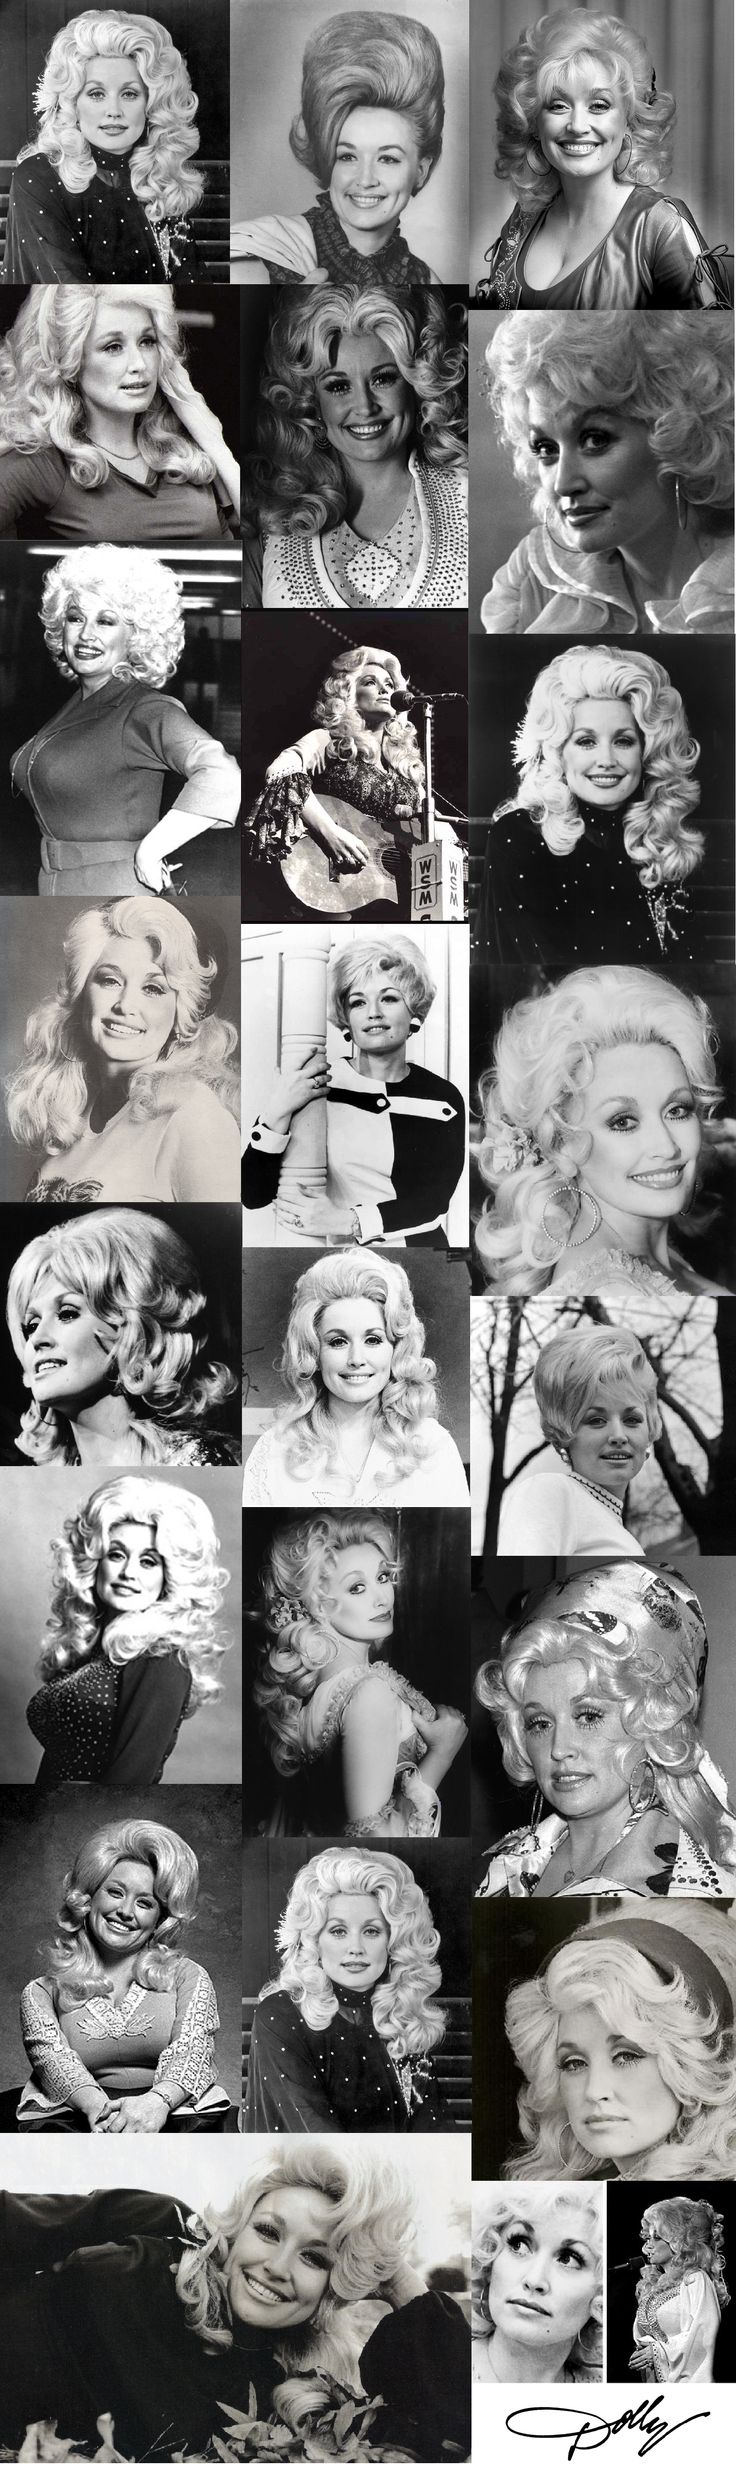 Our hometown girl #DollyParton - #Sevierville #Celebrity http://visitsevierville.com/